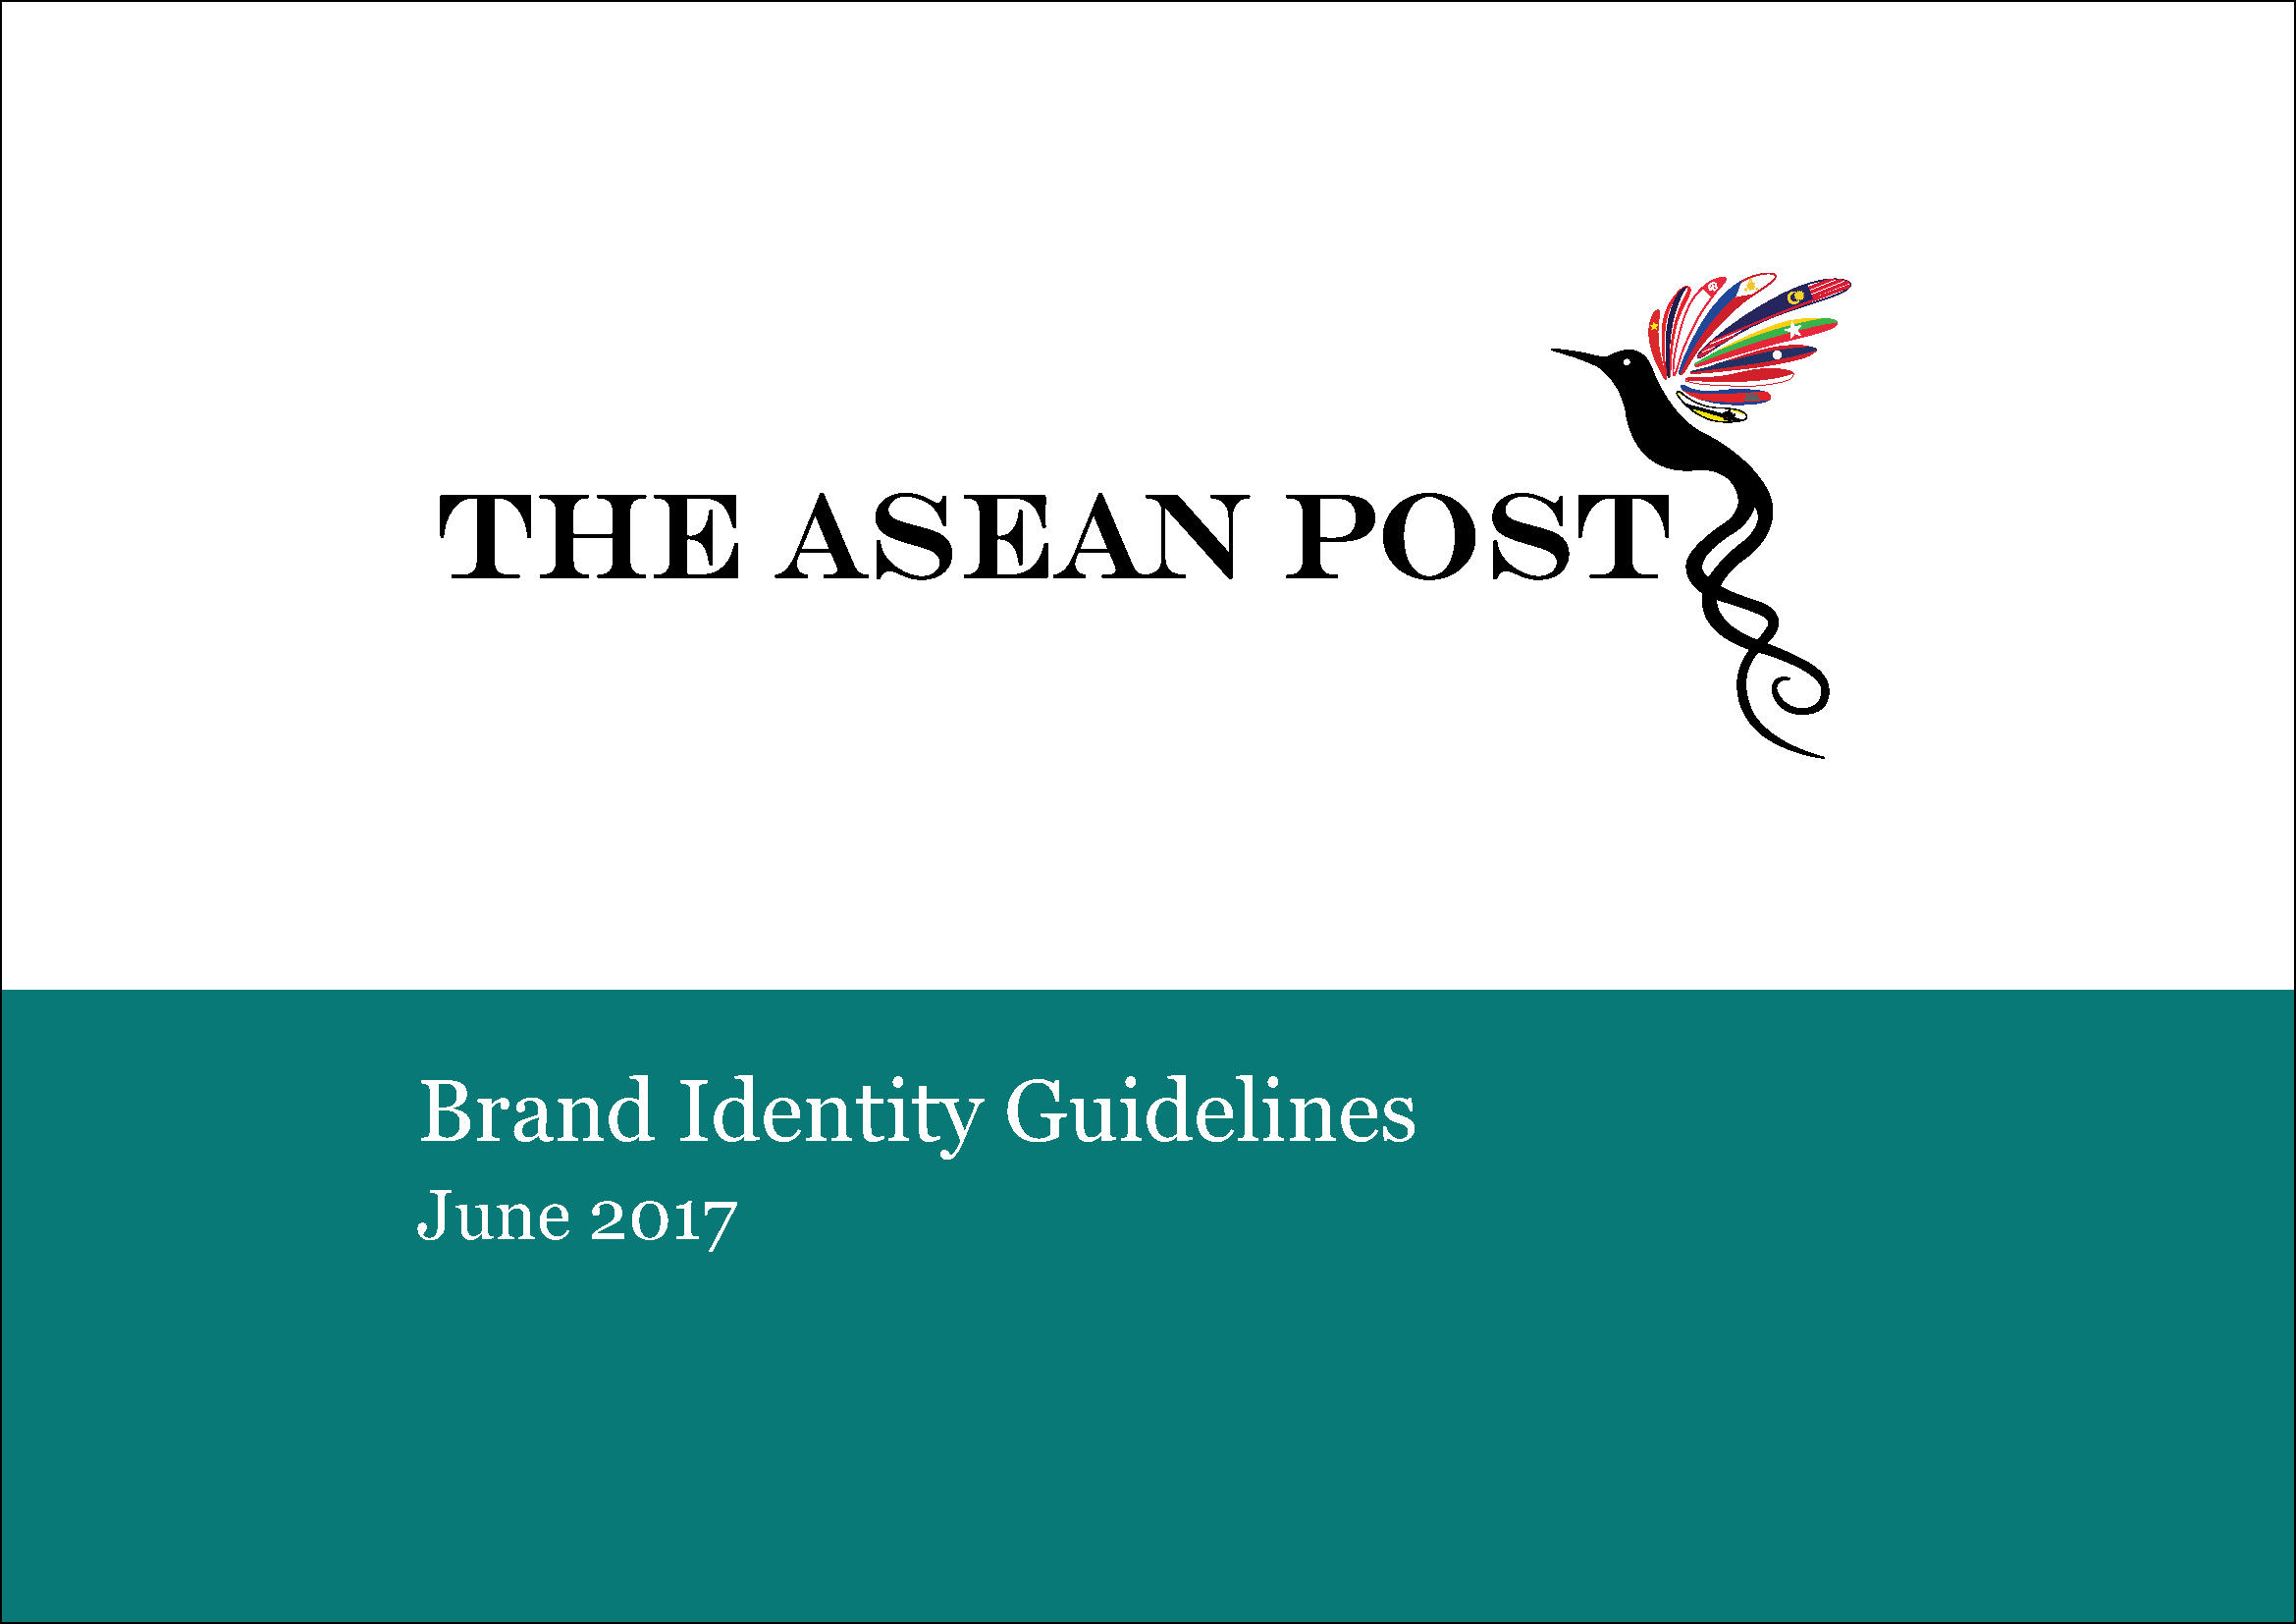 TAP_The ASEAN Post _Guidelines_whw 1_outline.png